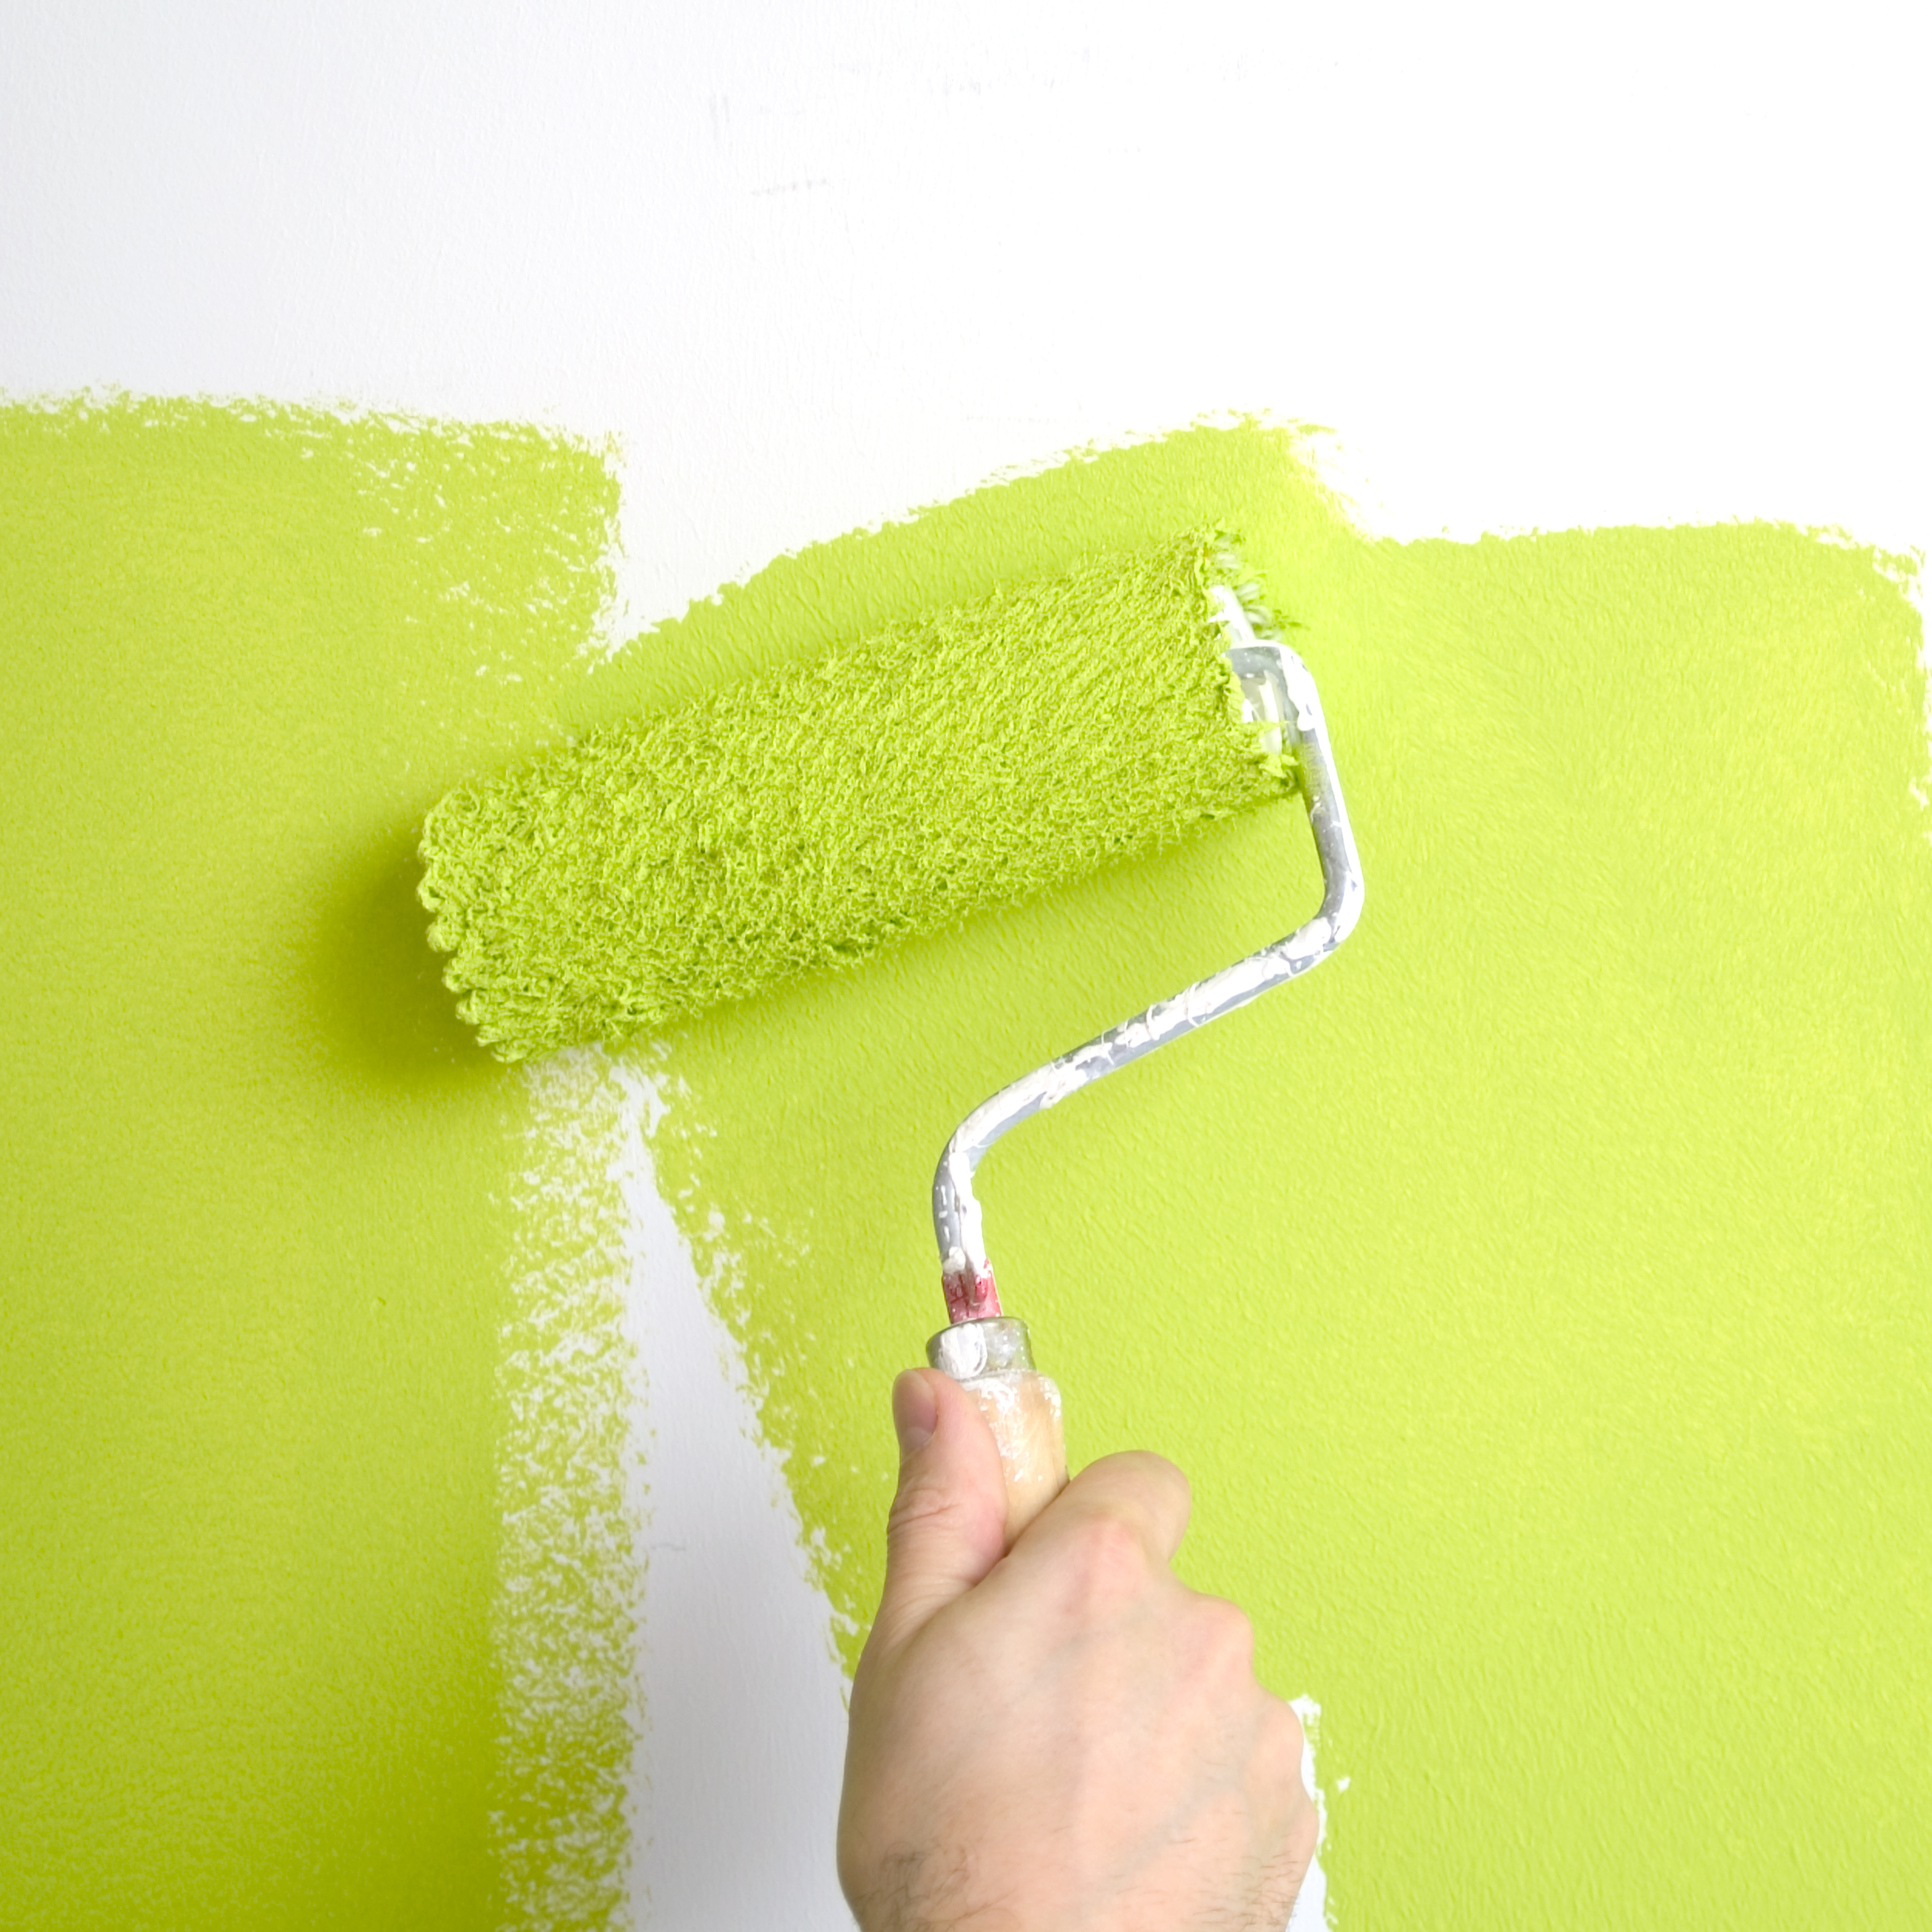 10 Tips For A Perfect Paint Job: A Fresh Coat Can Lead To A Fresh Look